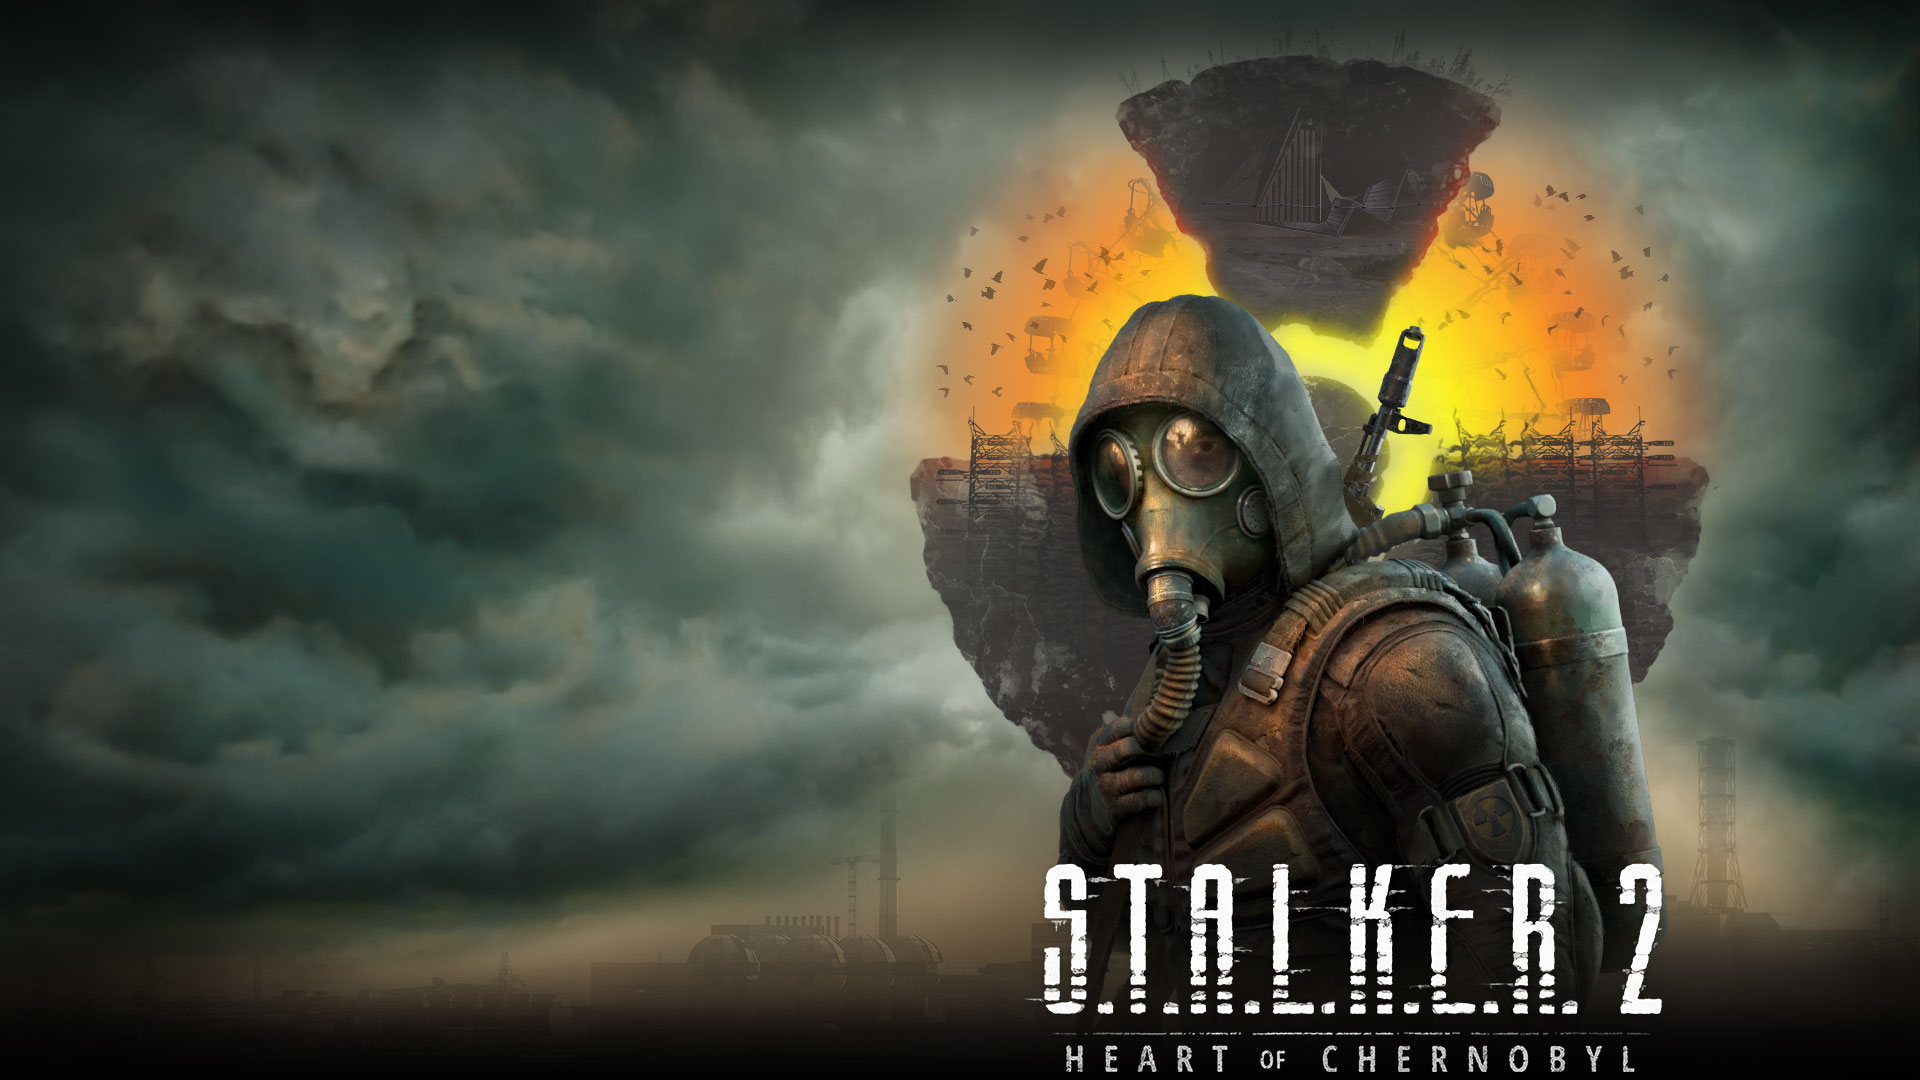 Stalker 2 Heart of Chernobyl, a character stands in front of a floating landscape with clouds and smoke in the air.